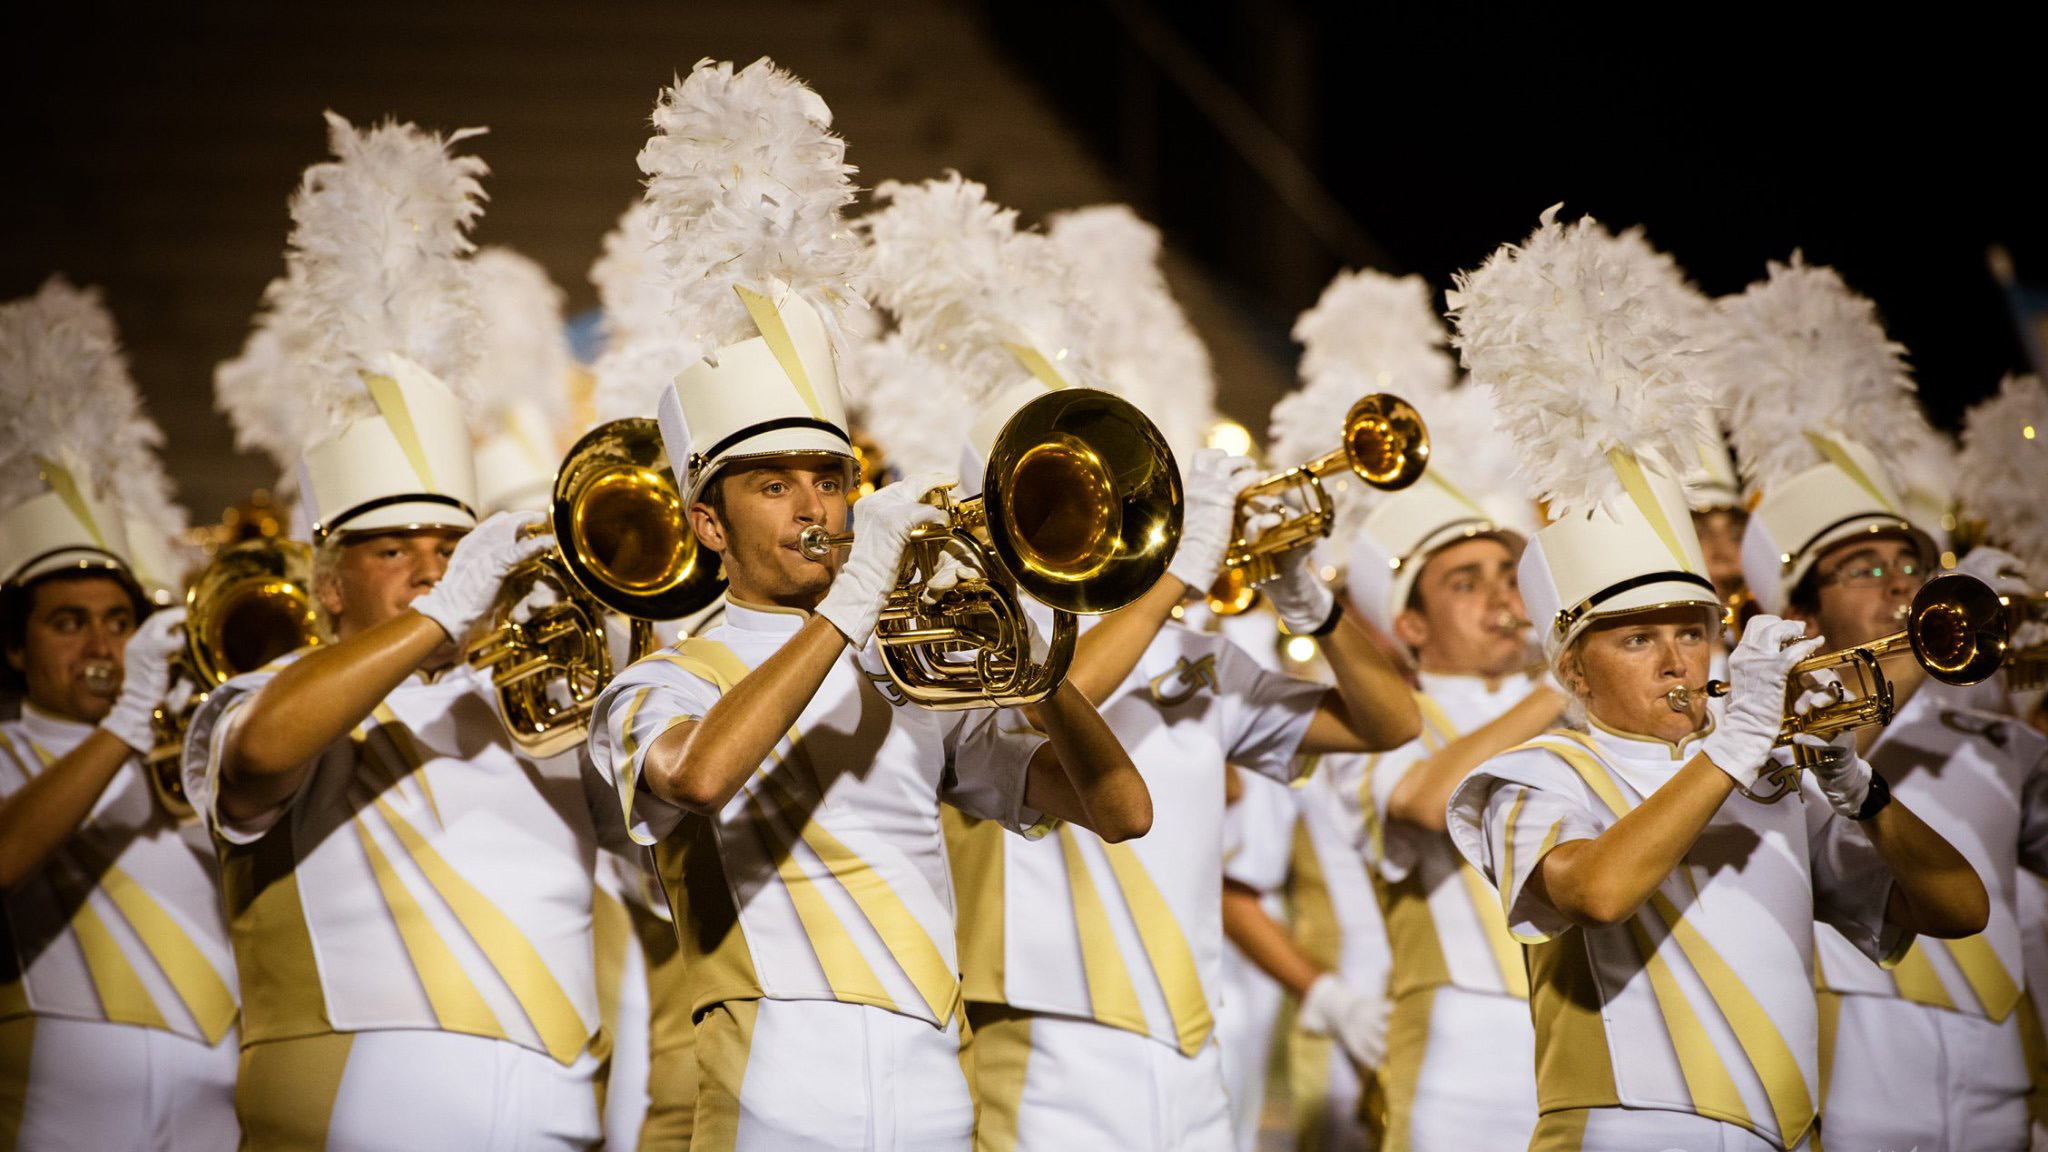 A group of brass players in the middle of a routine.